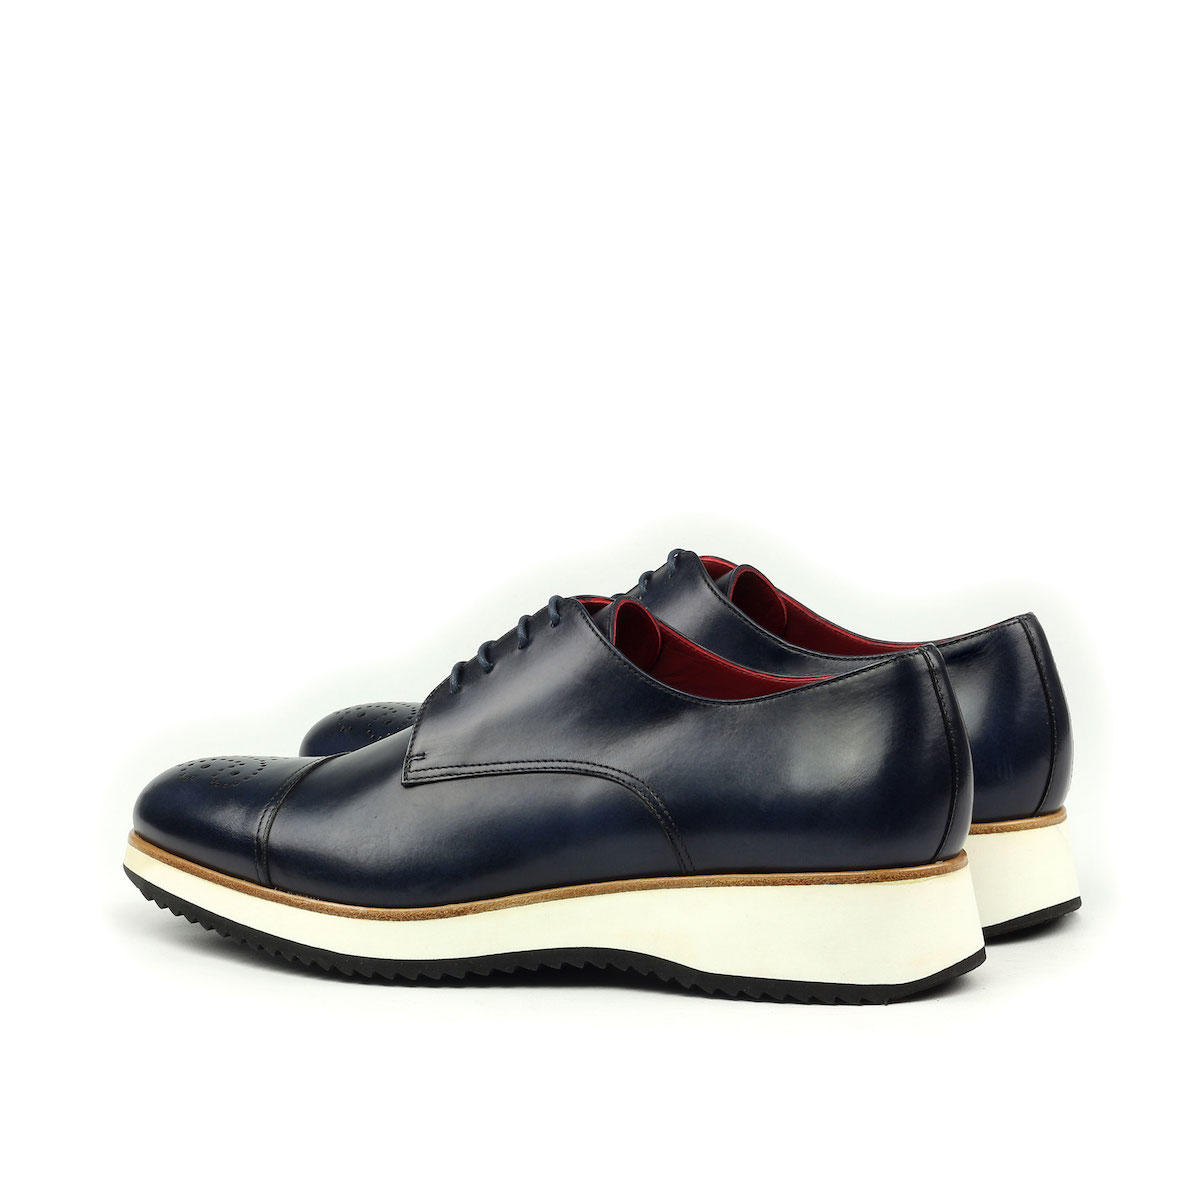 Manor of London 'The Derby'  Navy Painted Calfskin w/ Running Sole Shoe Luxury Custom Initials Monogrammed Back Side View